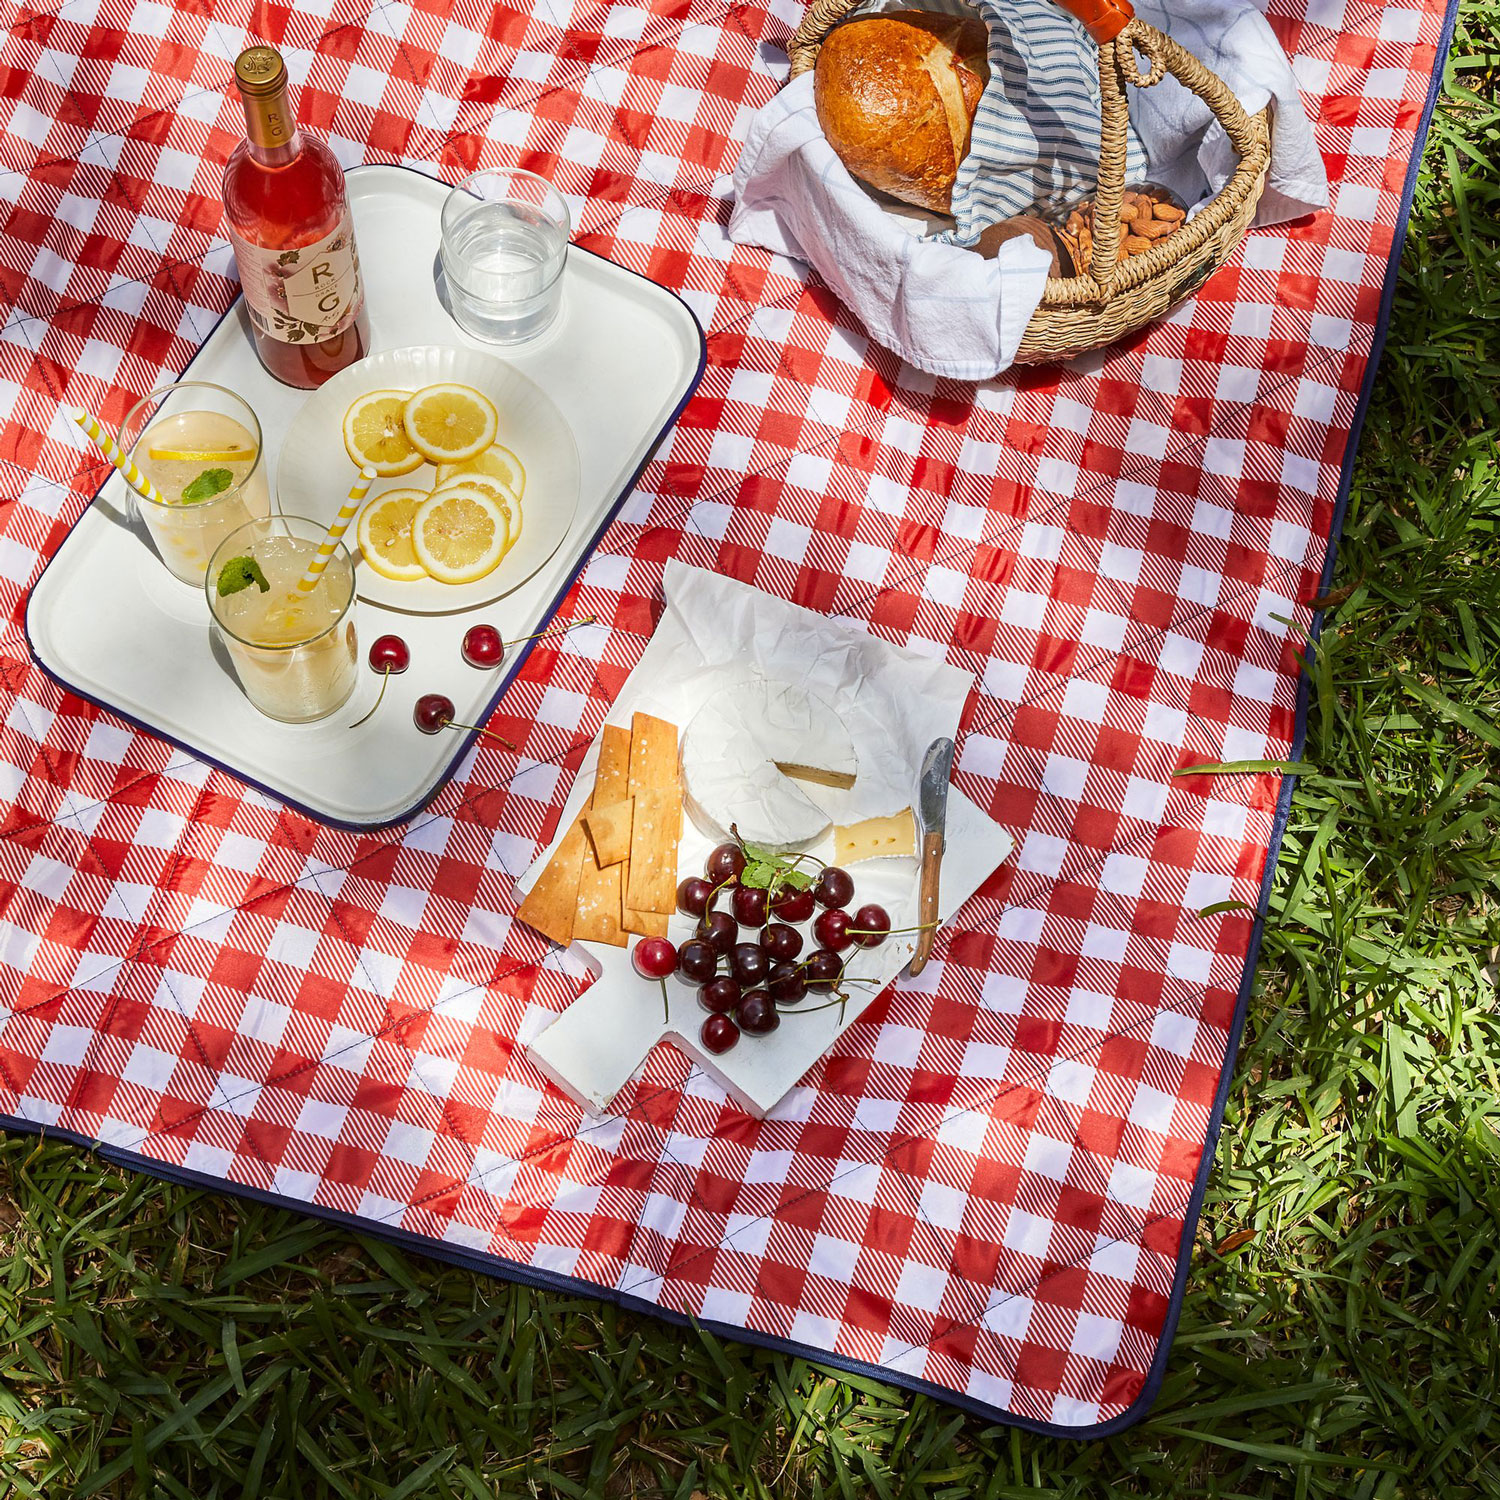 This Picnic Blanket Zips Up into a Tote, Making It Easy to Store and Carry